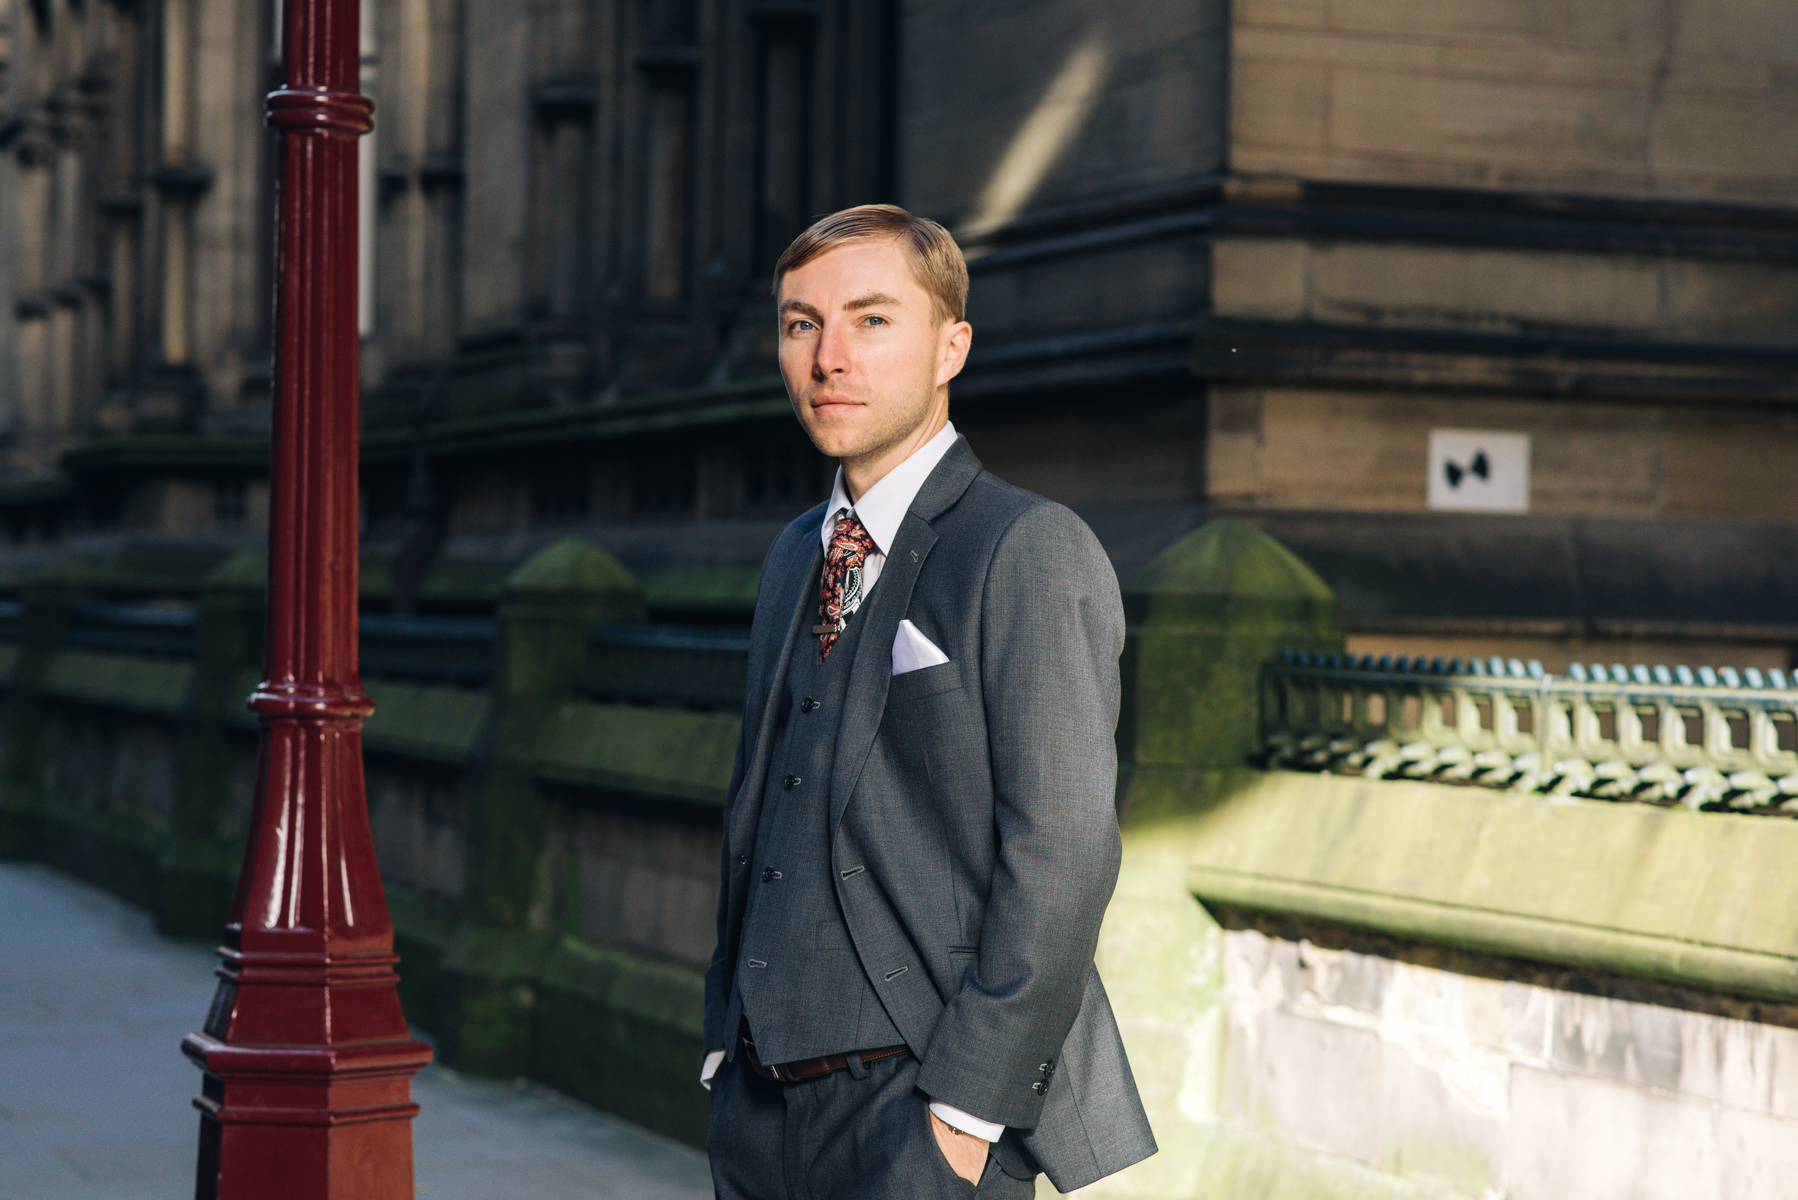 grey, business, formal, smart, tie, town, pocketsquare